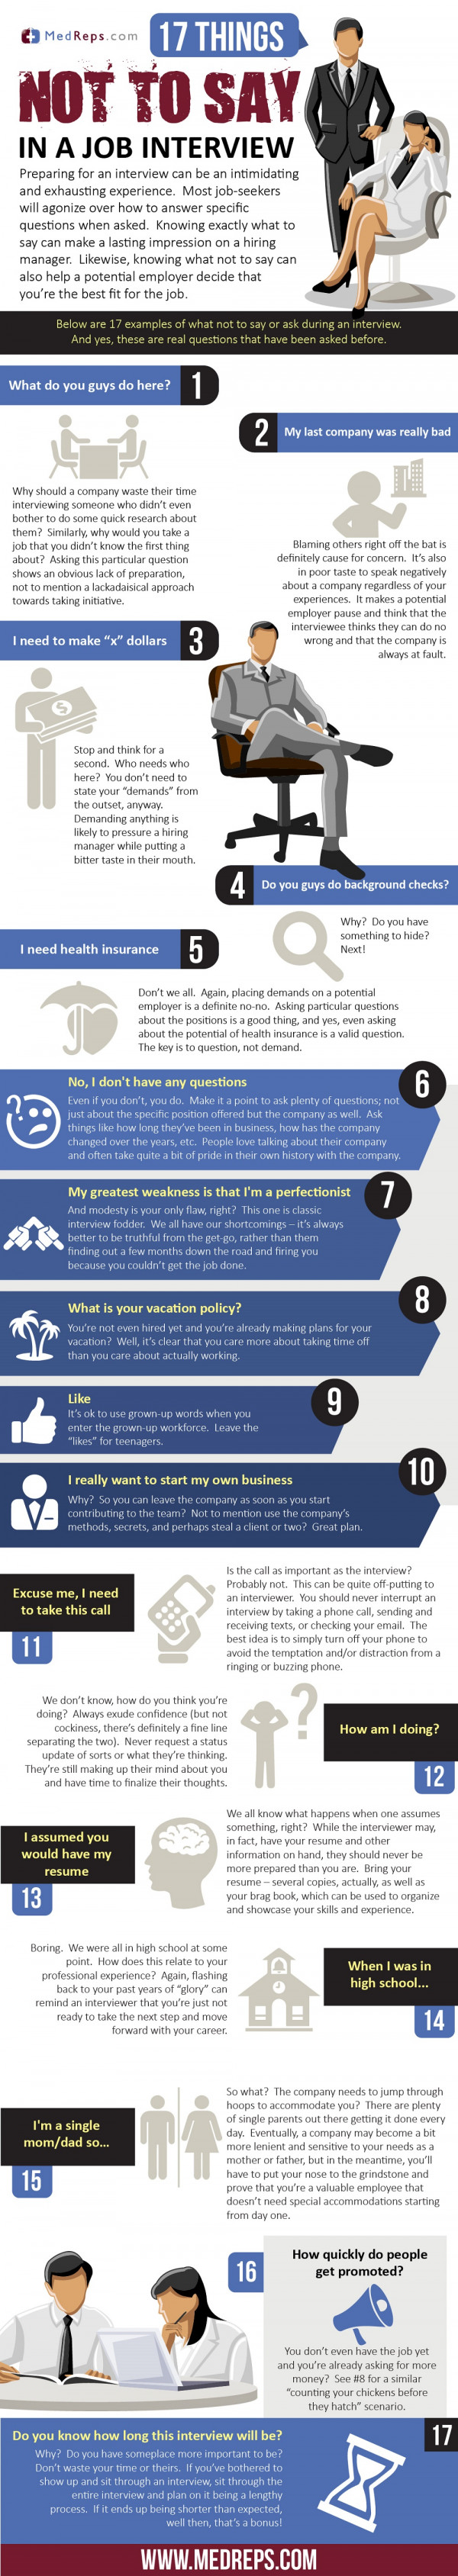 17 Things Not To Say In A Job Interview